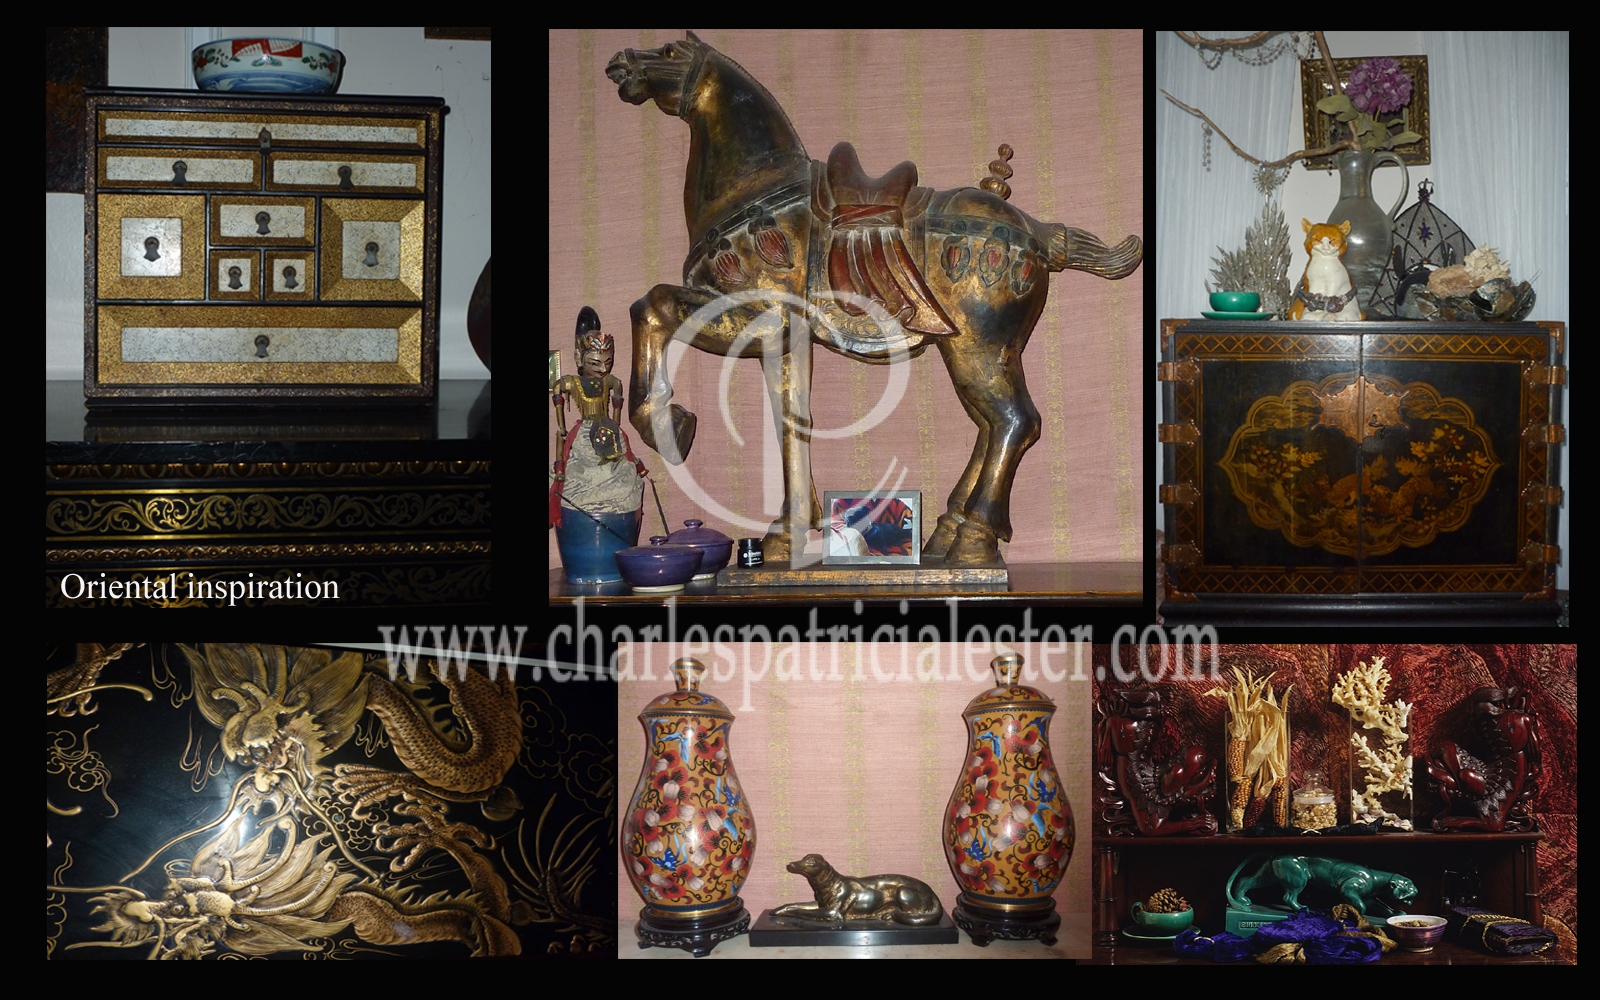 Oriental inspiration around our home